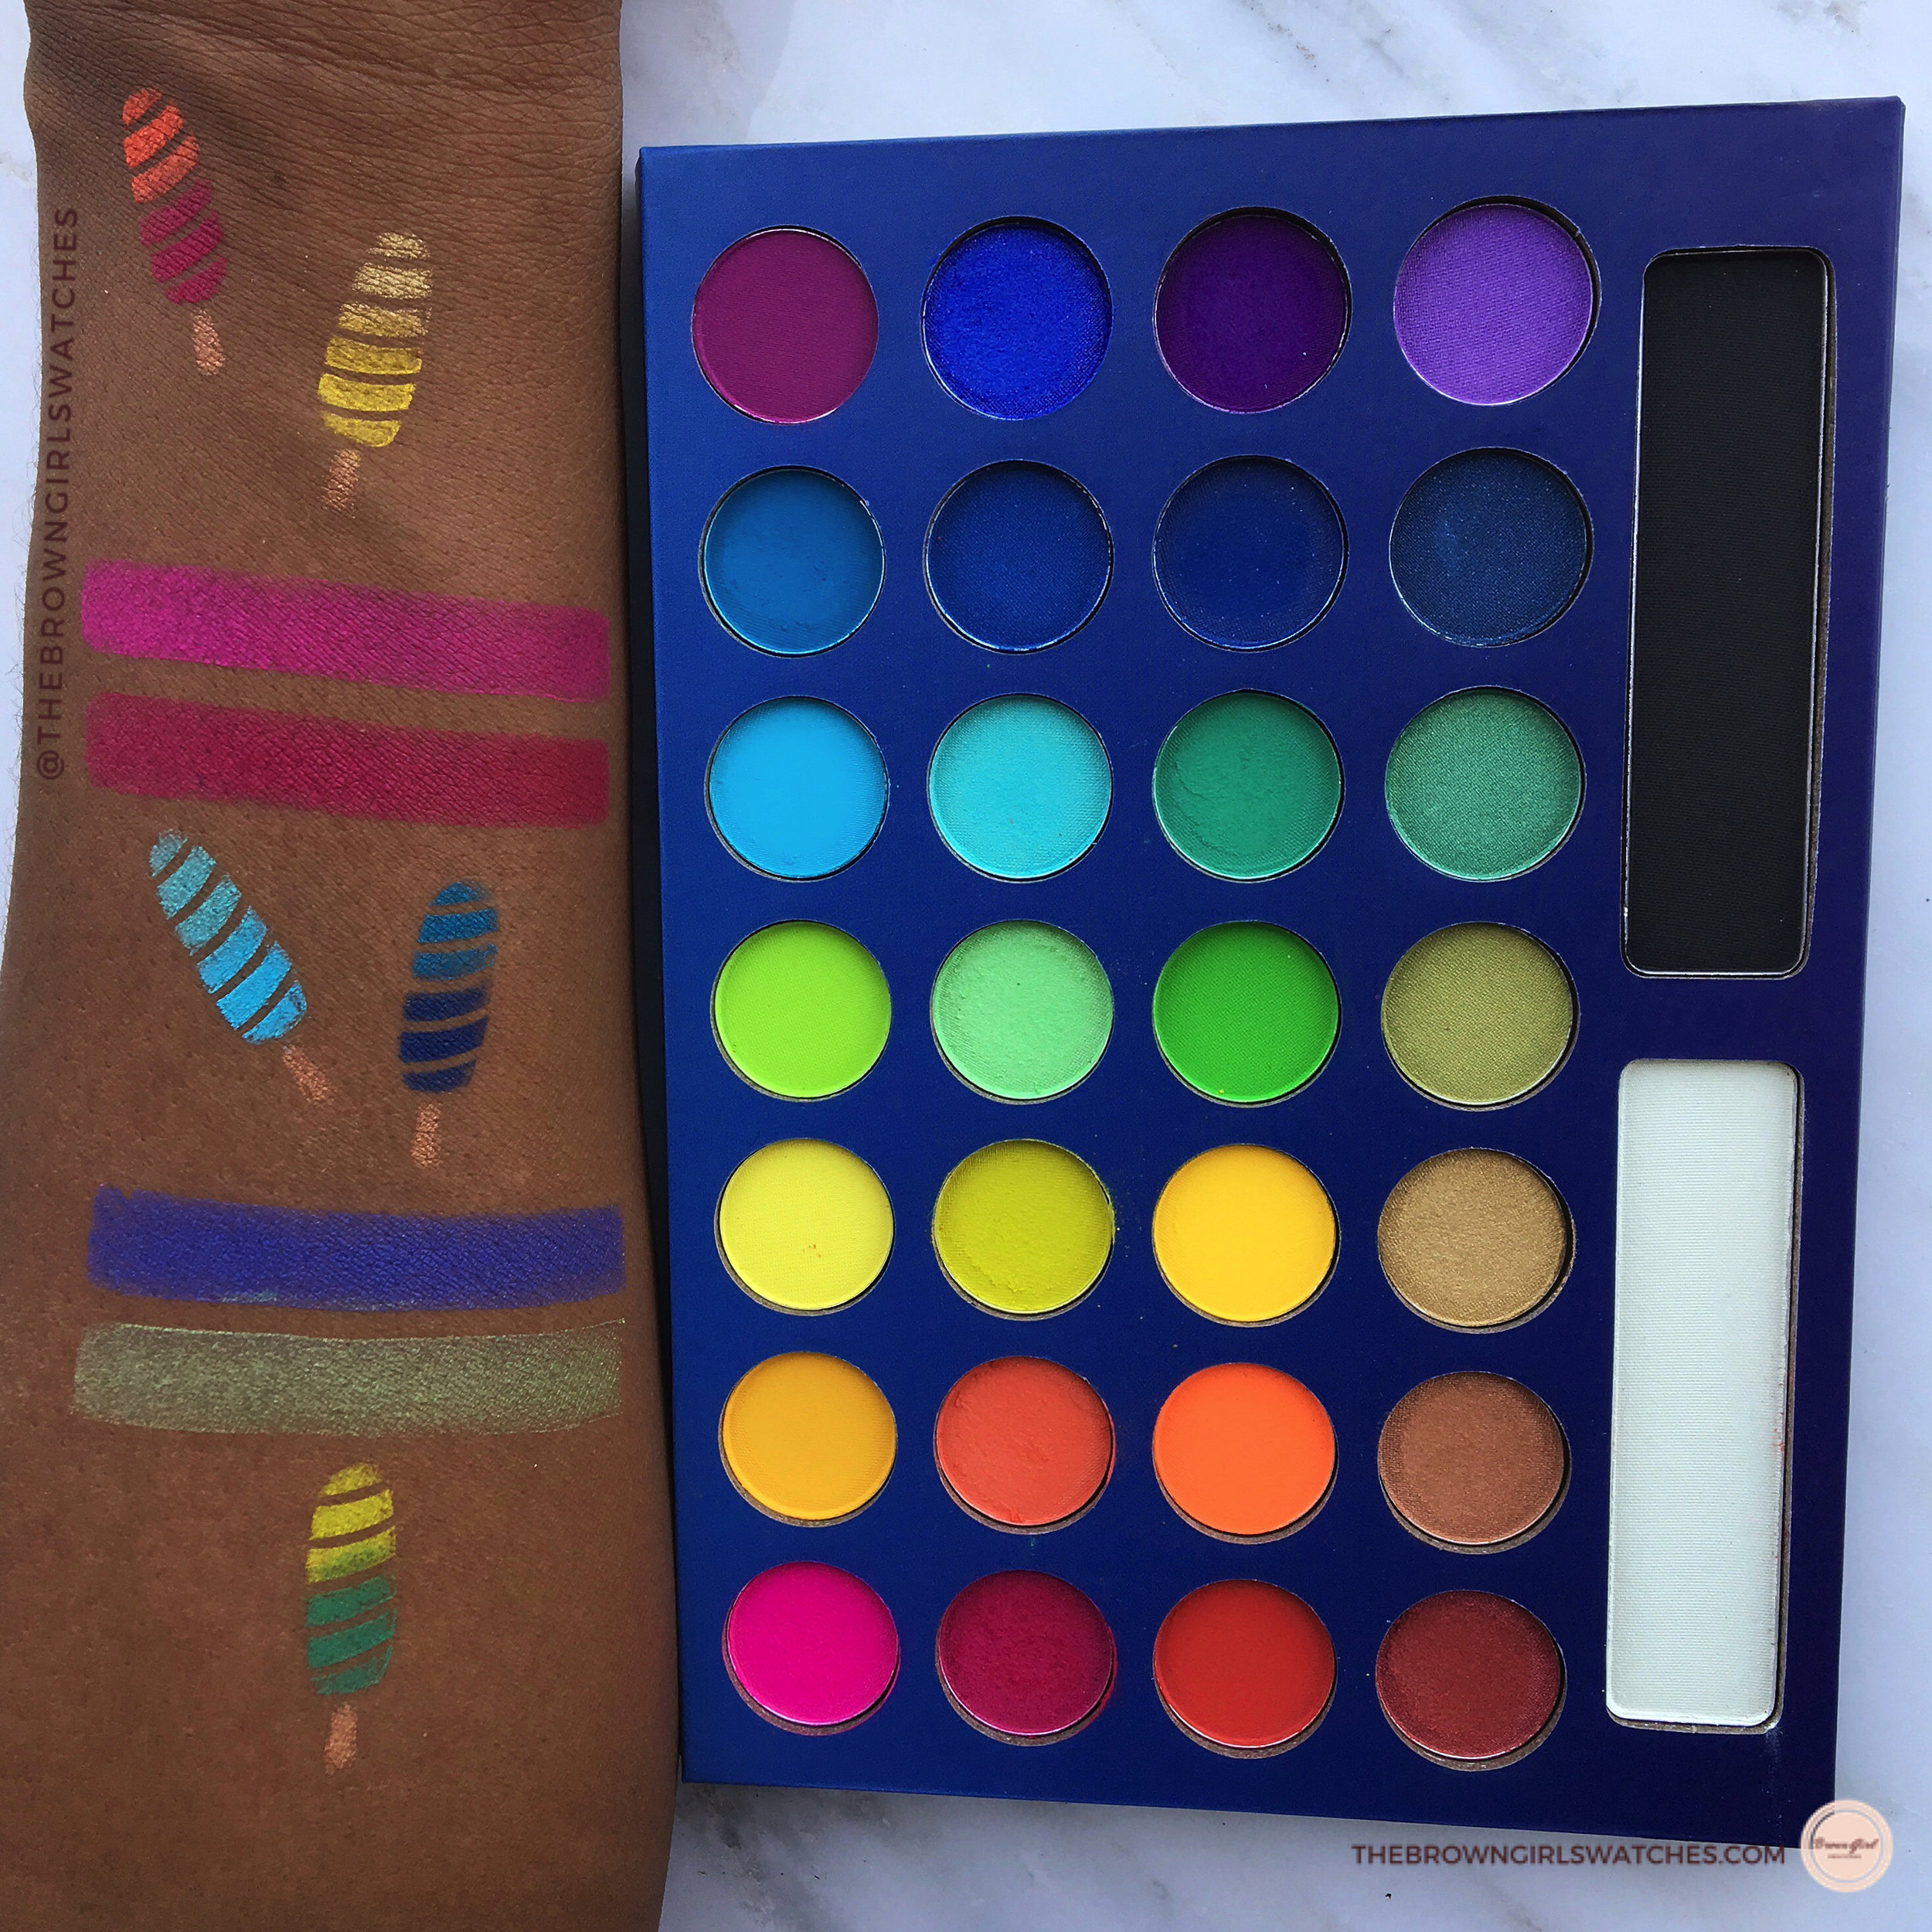 Swatches of the Take Me To Brazil Palette by BH Cosmetics